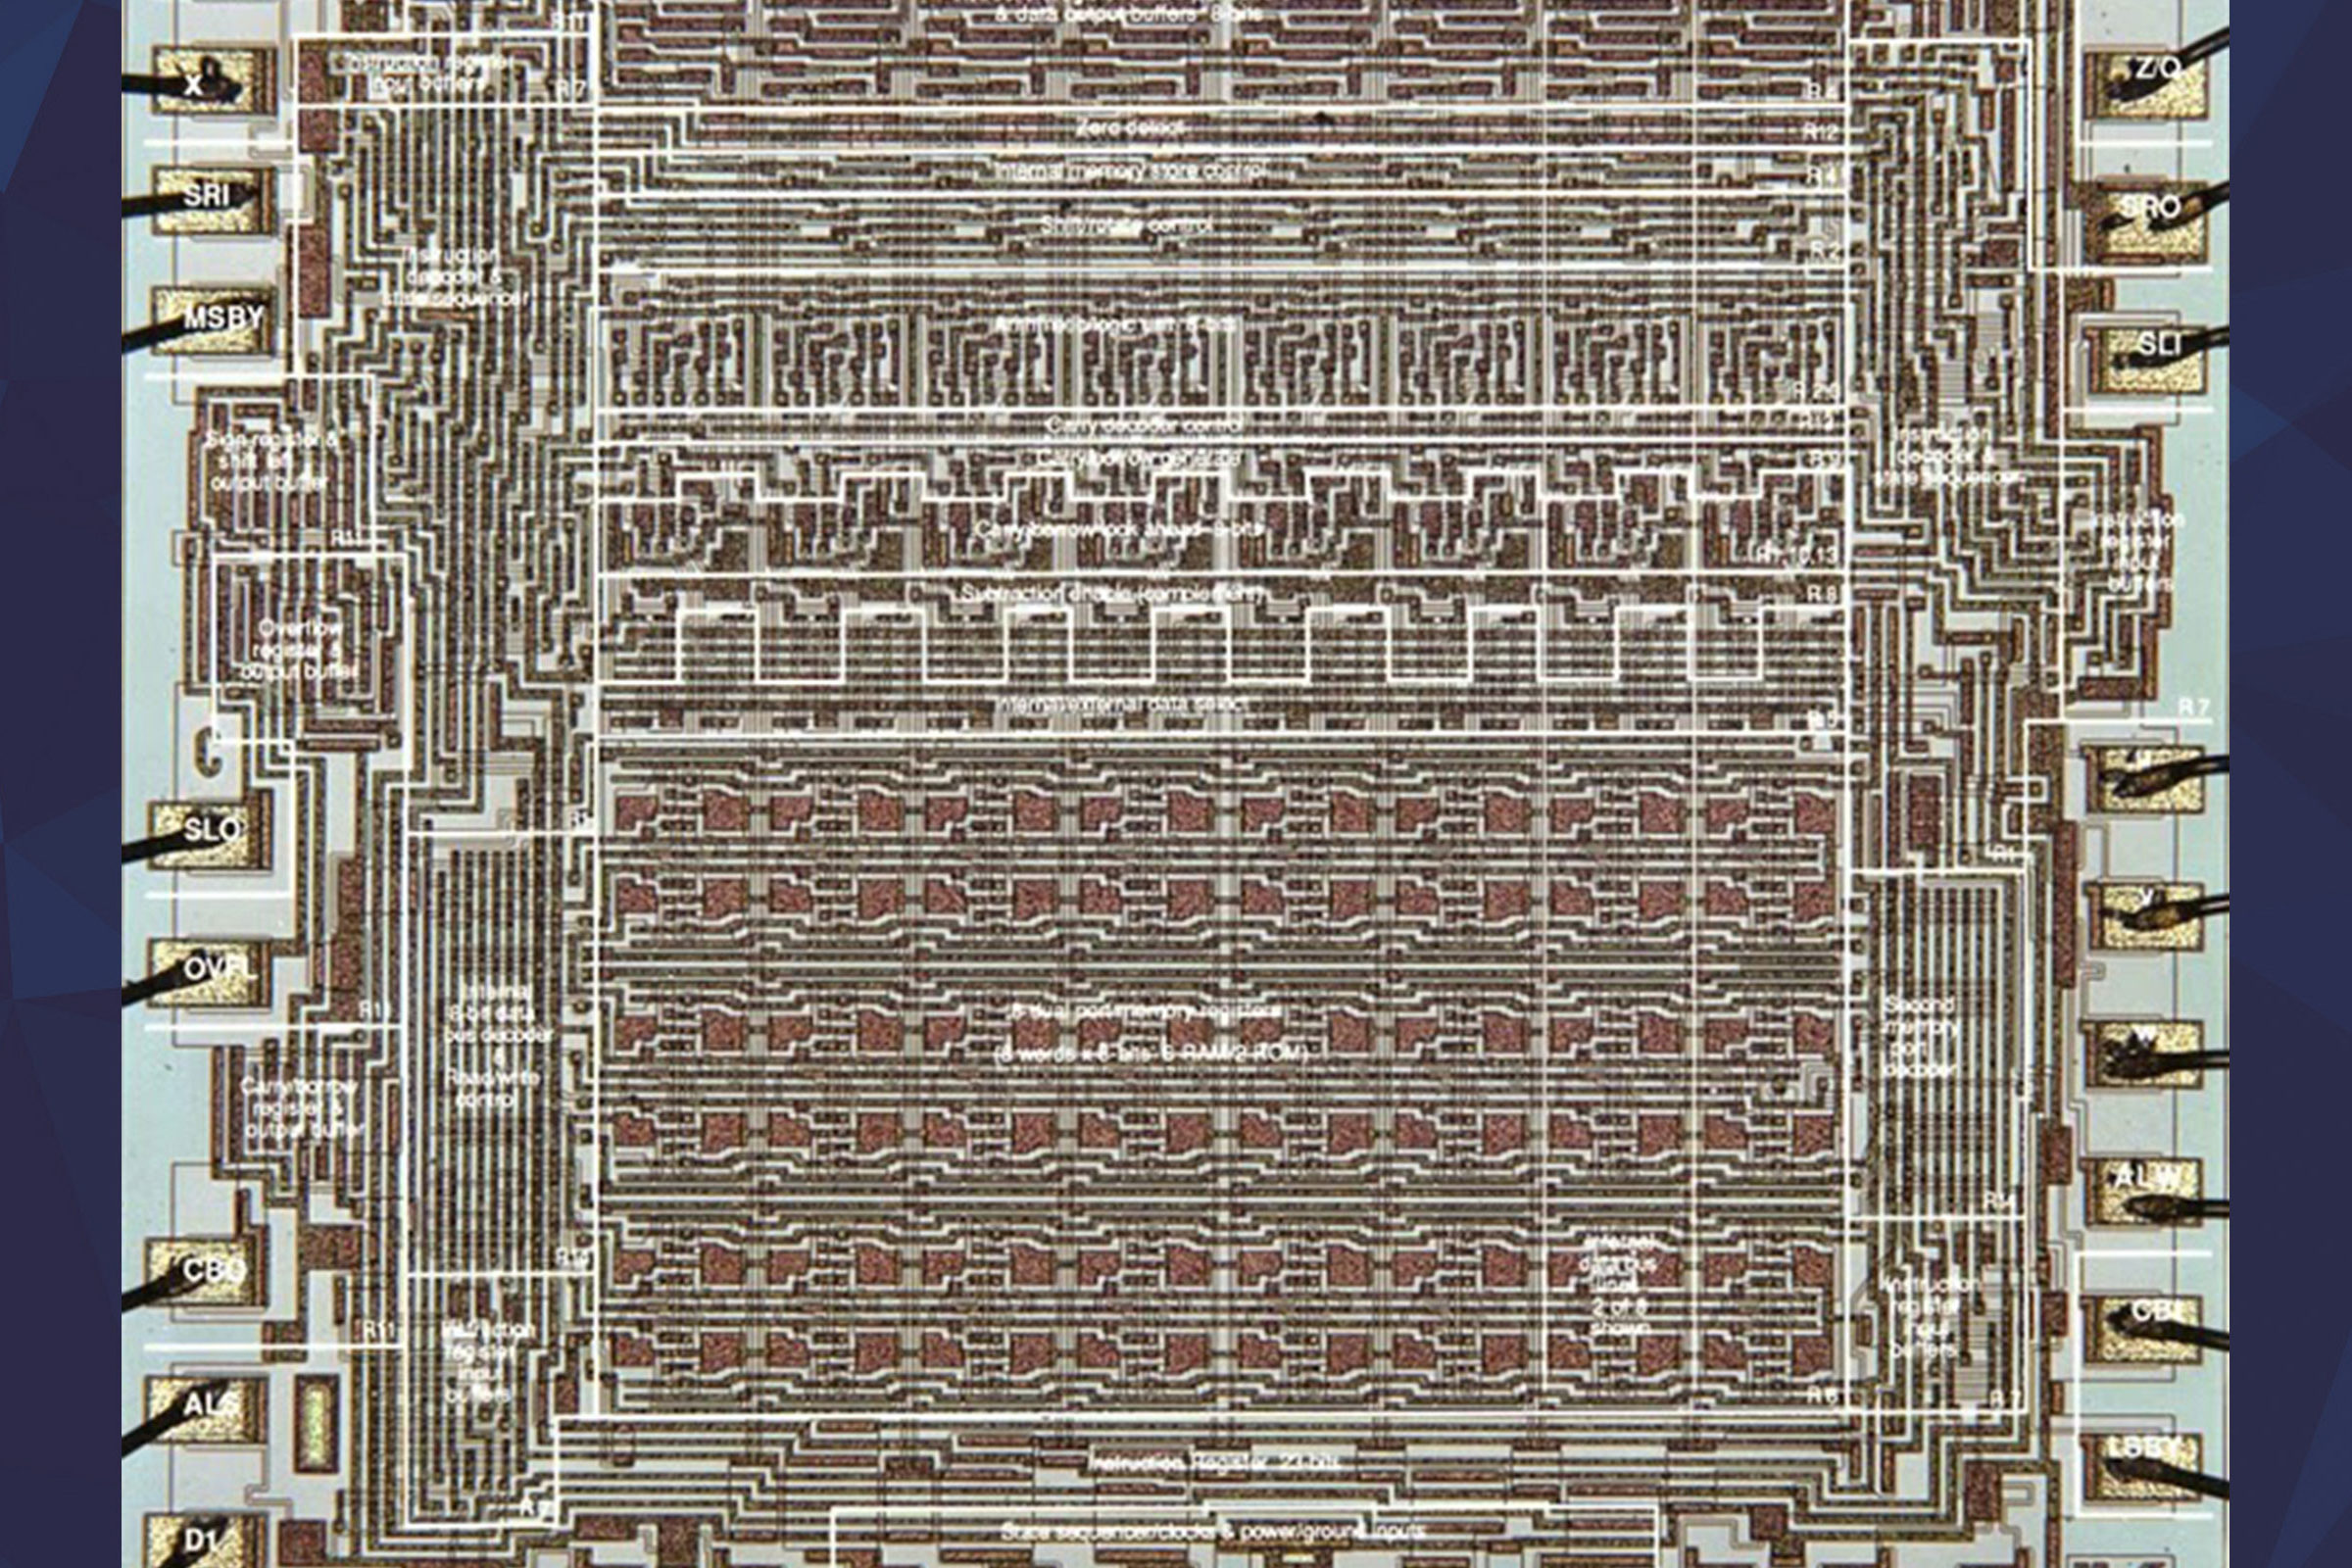 Closeup of the AL1 microprocessor